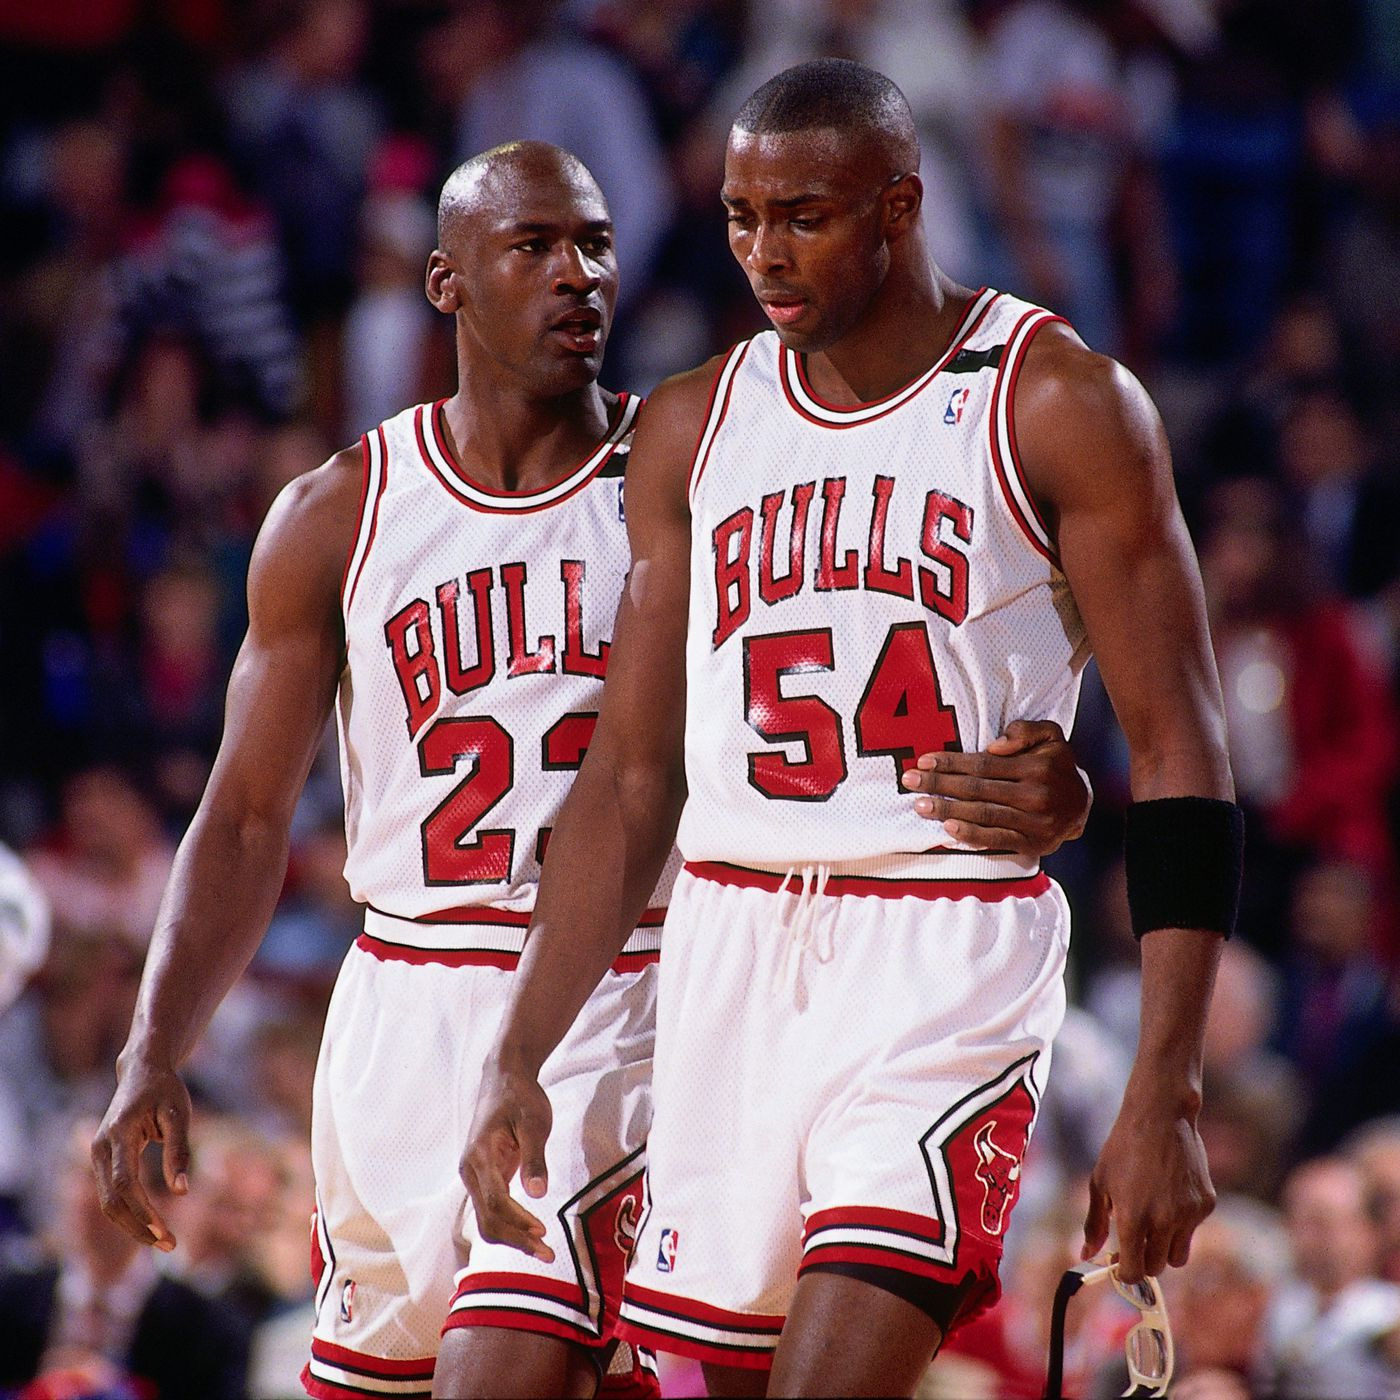 Credit Nathaniel S Butler NBA s Caption CHICAGO MAY 19 Michael Jordan 23 forts teammate Horace Grant 54 of the Chicago Bulls during Game e of the Eastern Conference Finals against the Cleveland Cavaliers played on May 19